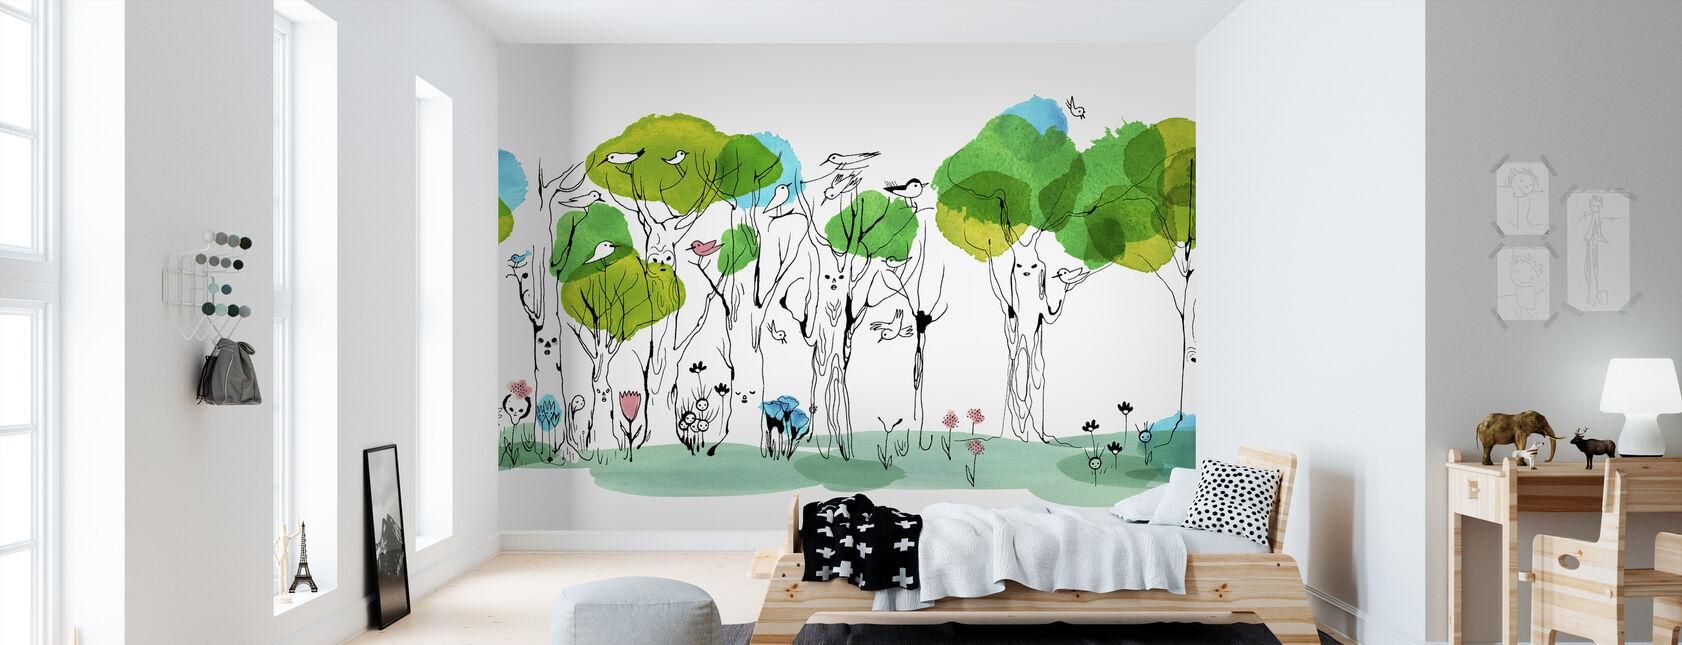 Whispering Tree - Wallpaper - Kids Room